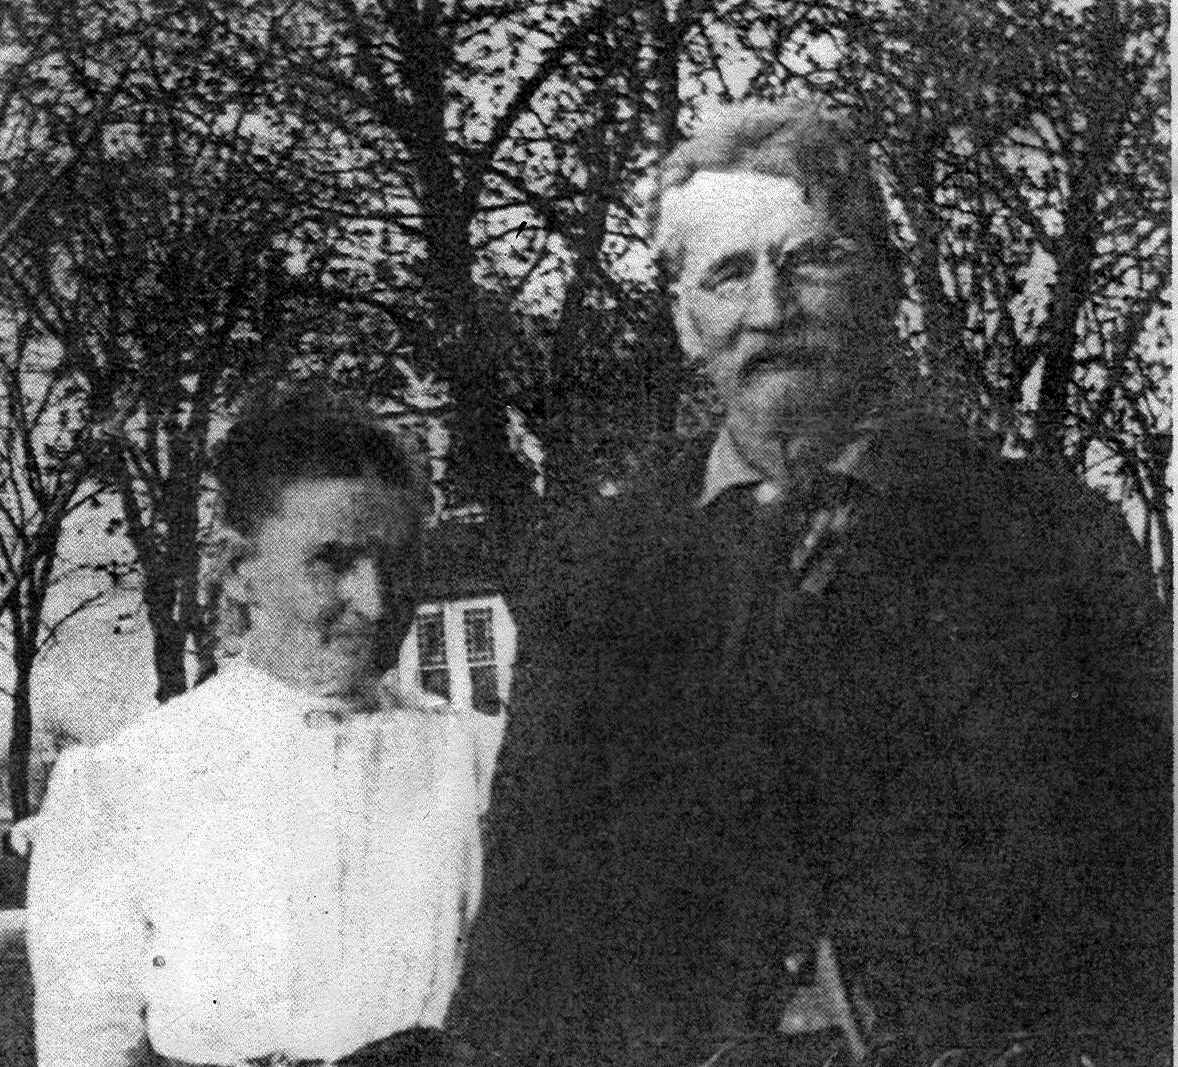 Anna Layng and William Faulkner